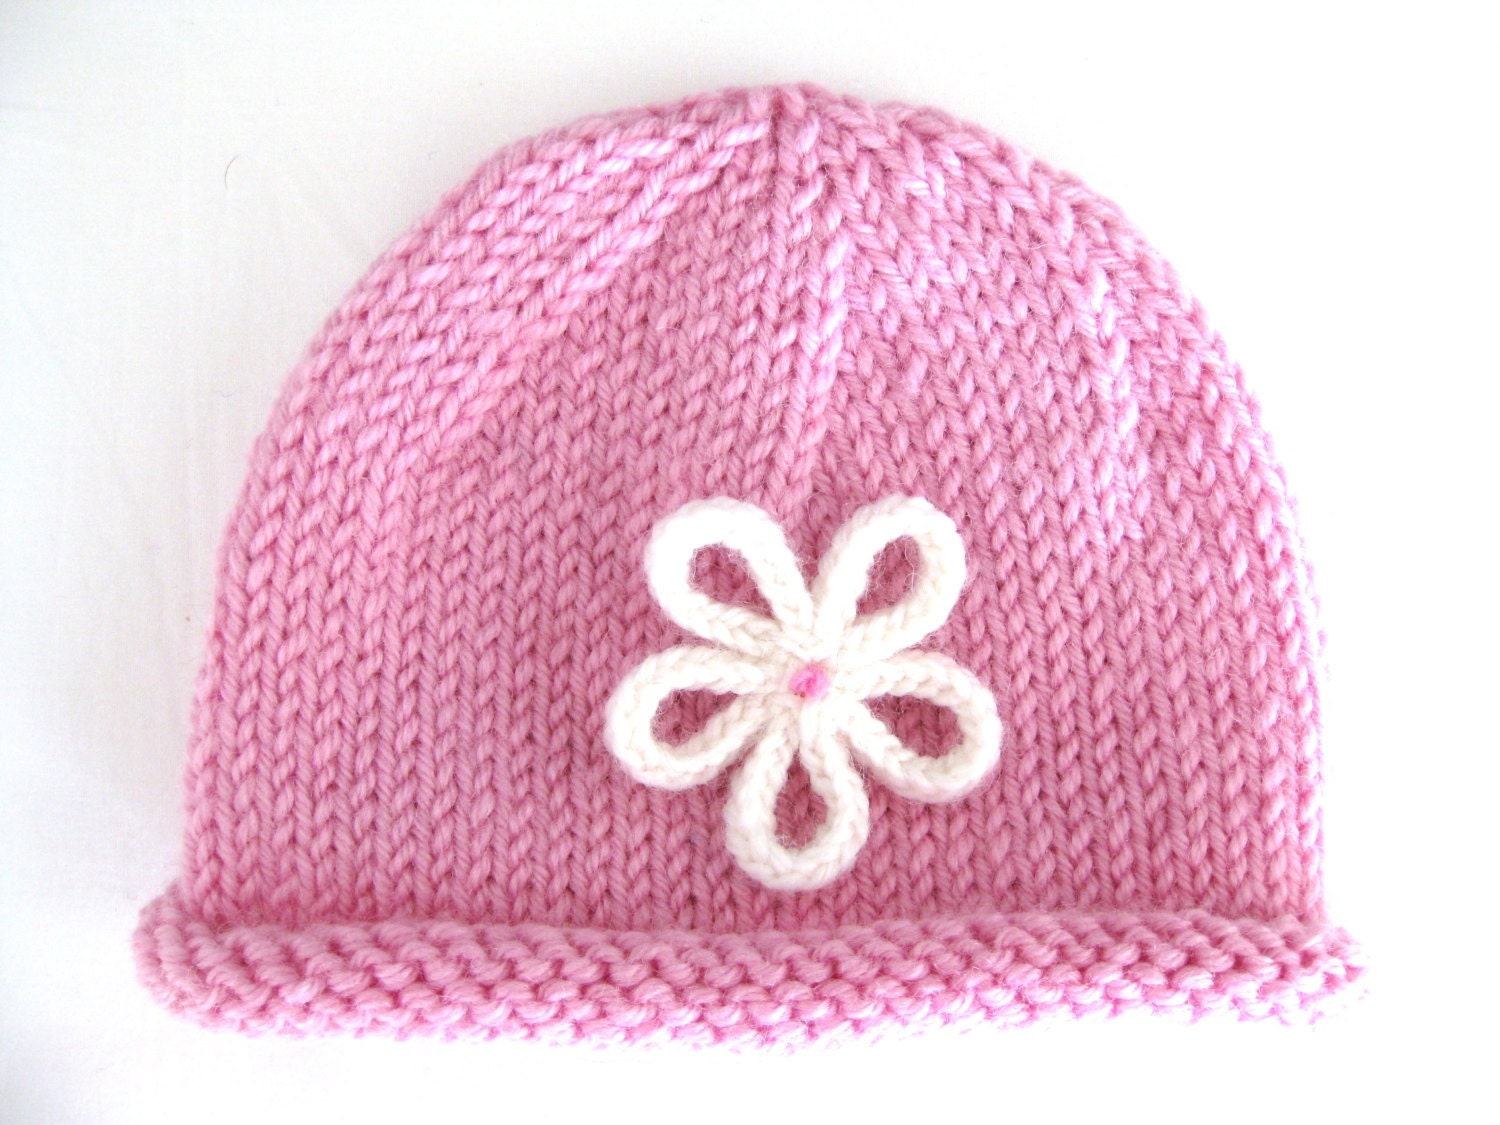 Knitting Pattern Preemie Baby Hat : PATTERN Knitted PREEMIE and NEWBORN Rolled Brim Hat with